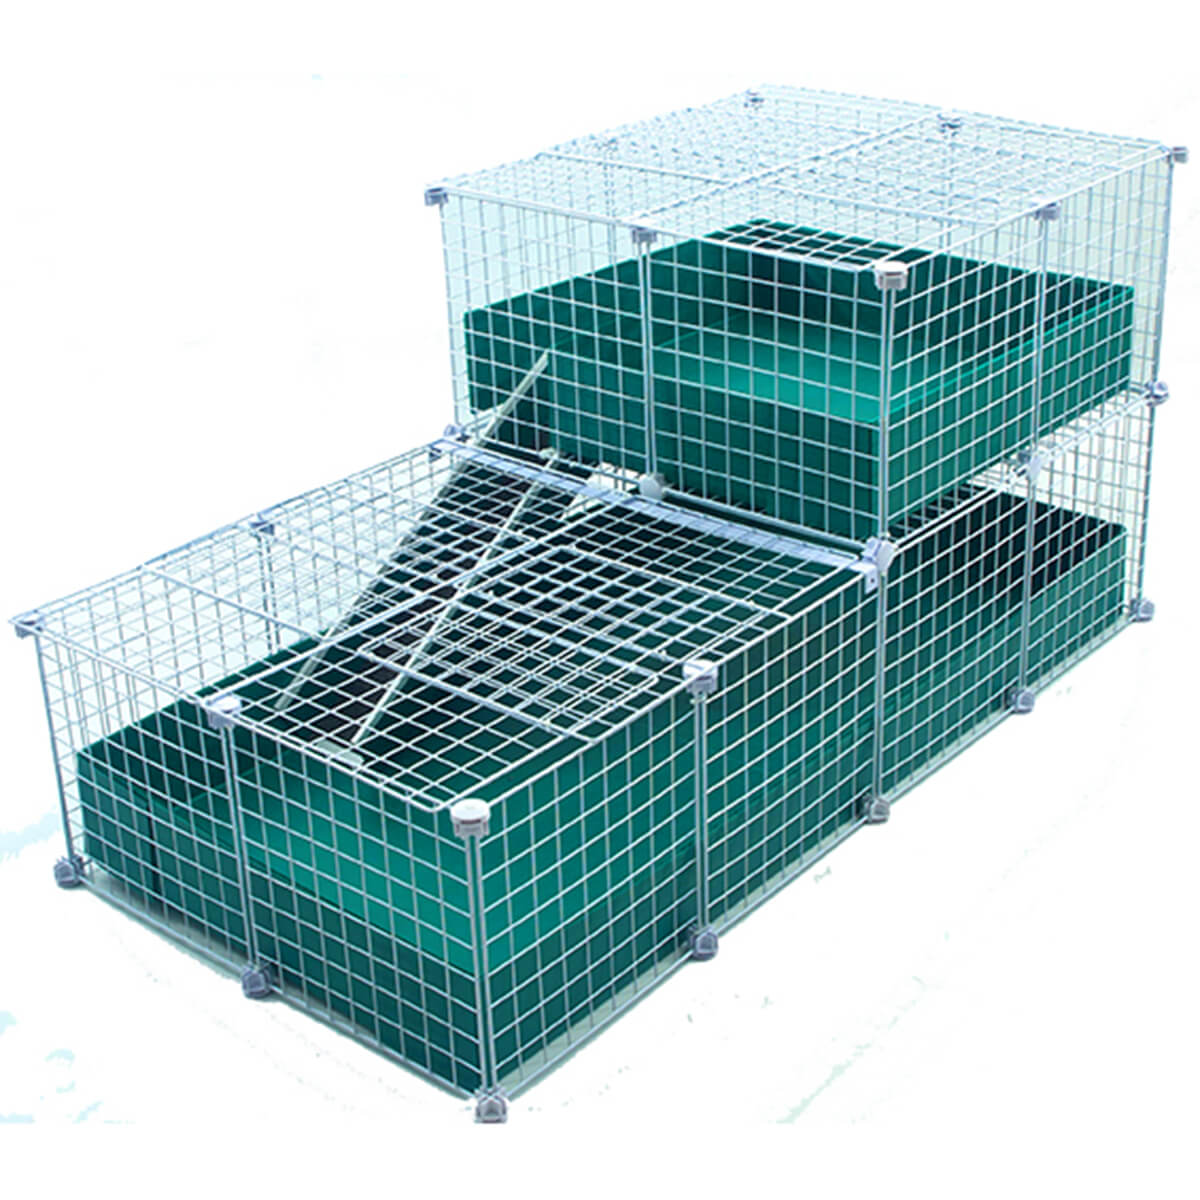 Large with wide loft covered deluxe covered cages c c for Making a c c cage